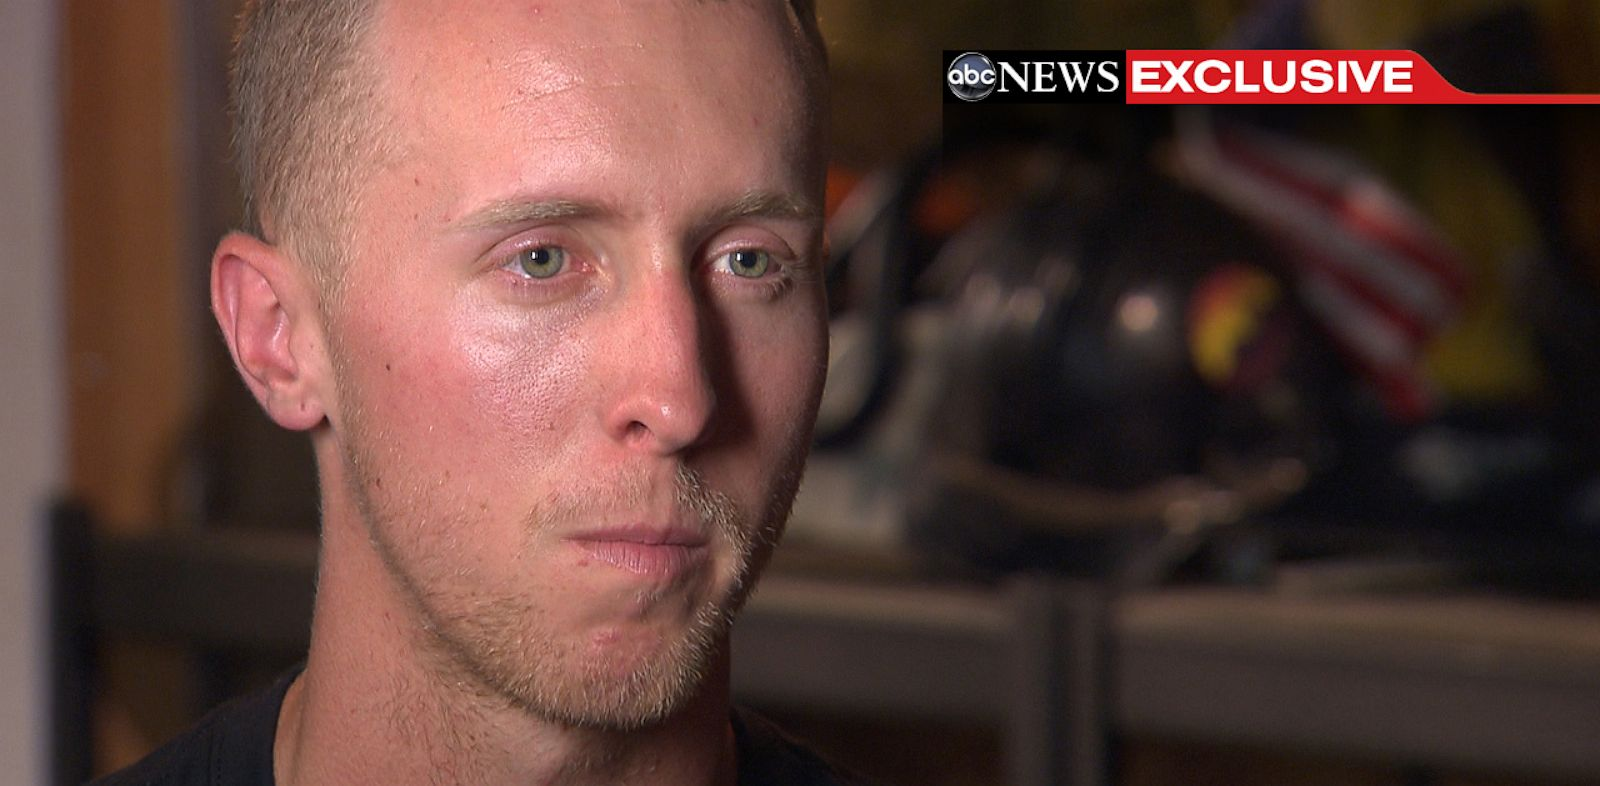 PHOTO: Brendan McDonough, speaking here in an exclusive interview with ABC News, was the only member of his 20-man Granite Mountain Interagency Hotshot firefighting crew to survive the Yarnell Hill Fire in late June 2013.